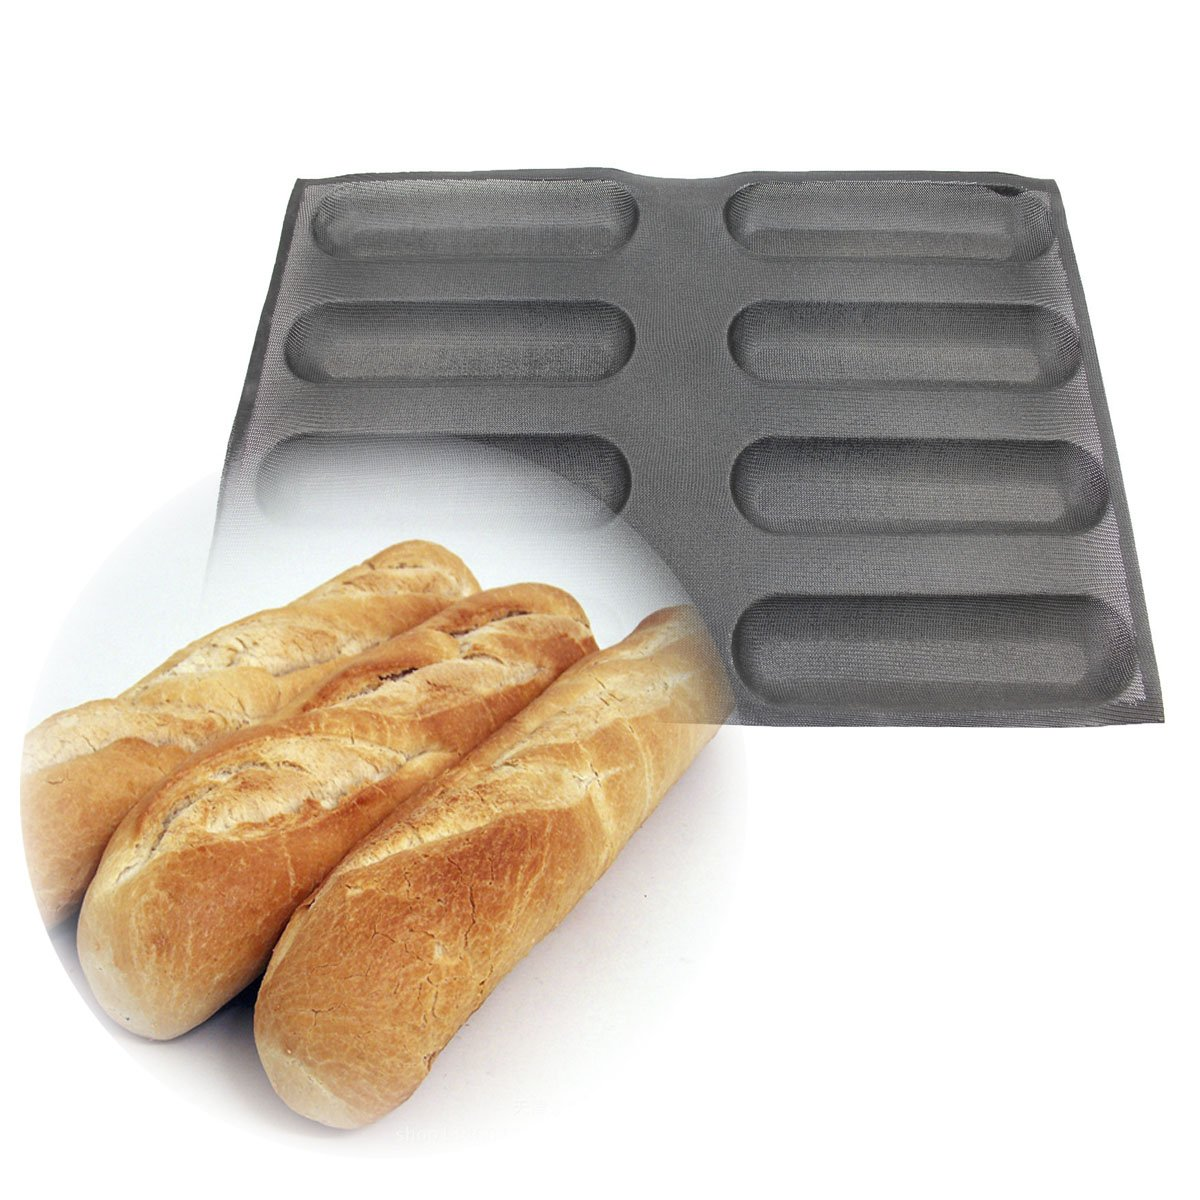 Baker Boutique 8 Loafs Silicone Baking Bread Molds Black Square Flexible Reusable Non Stick Molding Safe